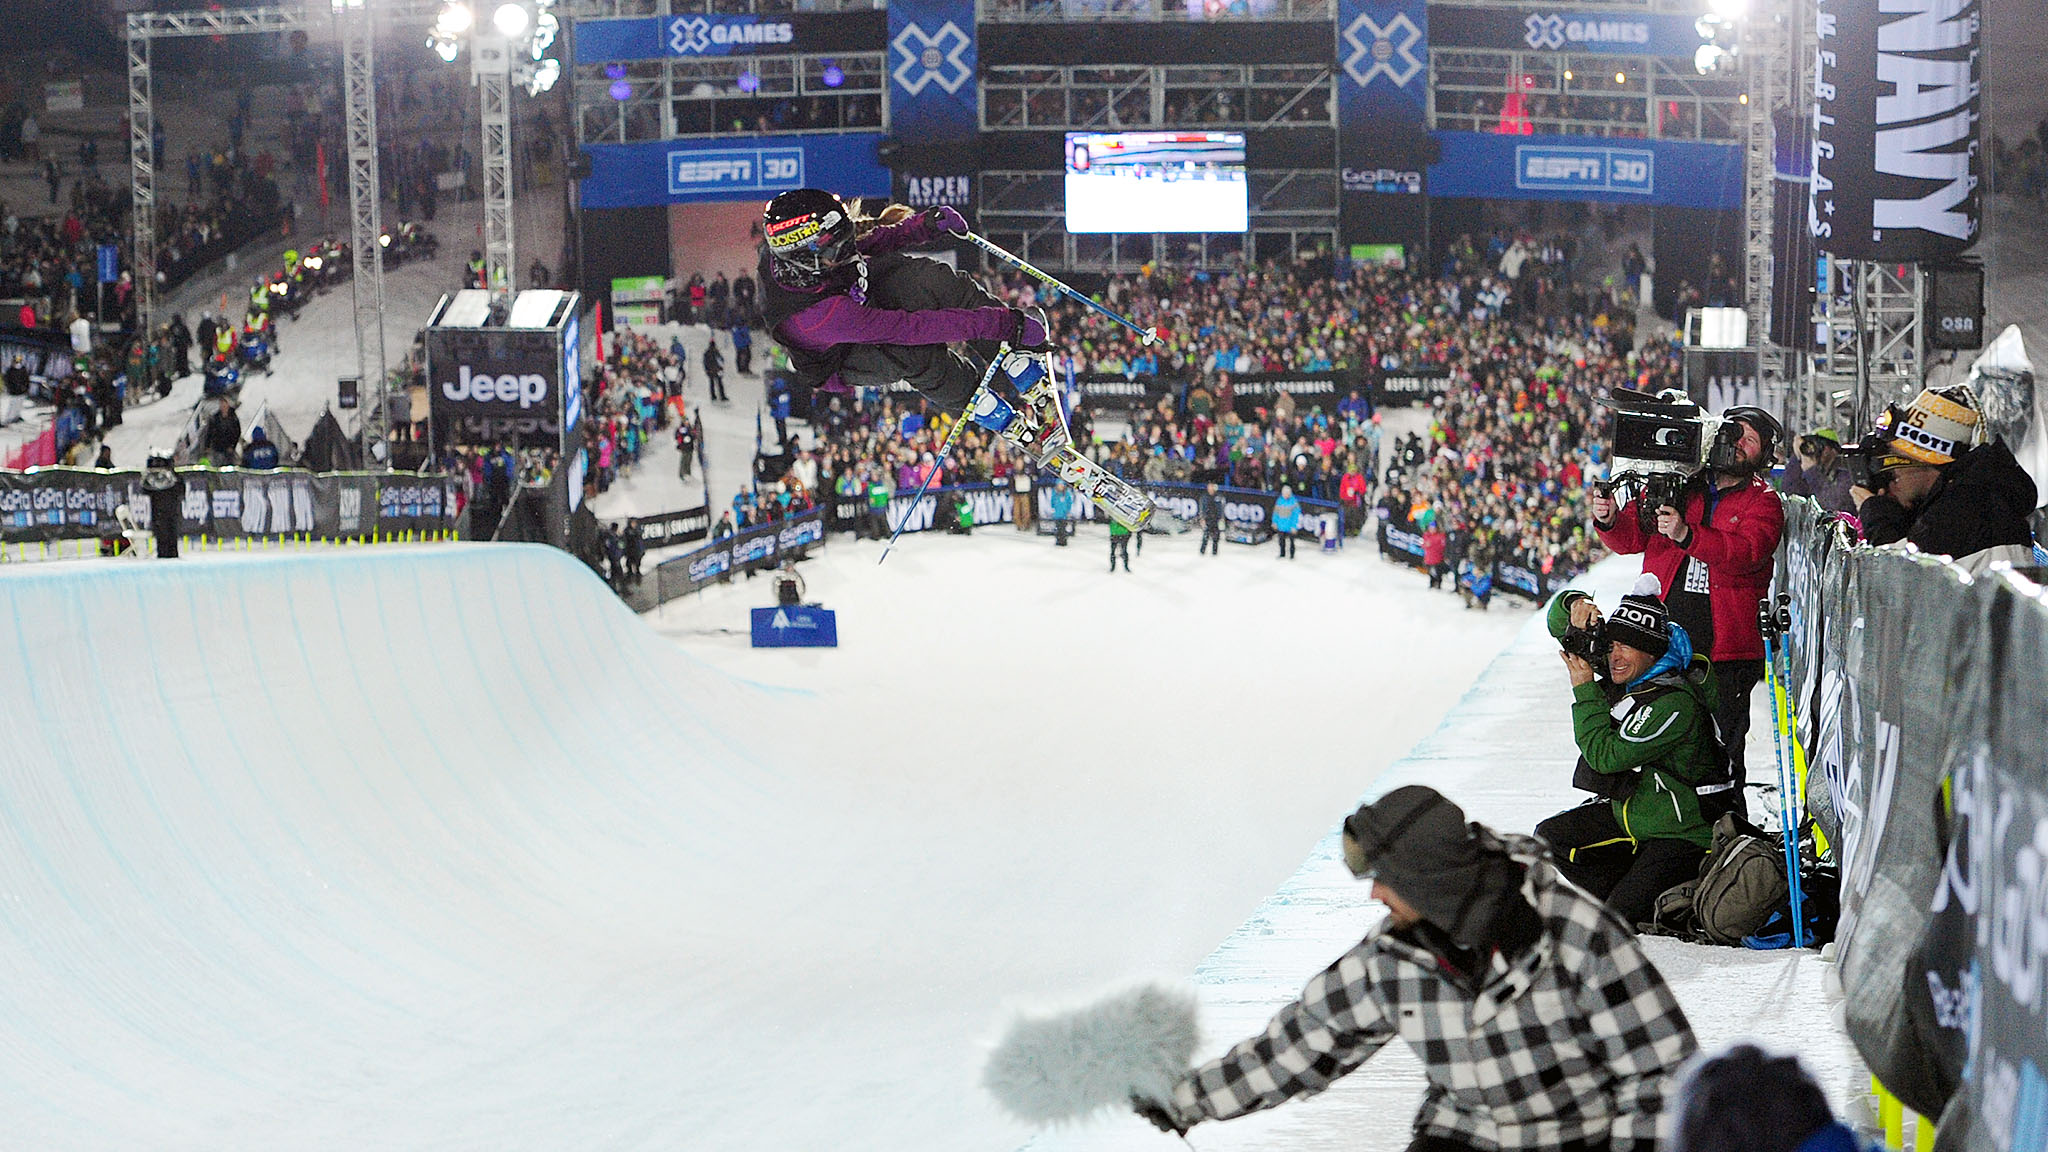 Maddie Bowman unseated defending champ Roz Groenewoud in the SuperPipe to take home her first X Games gold.